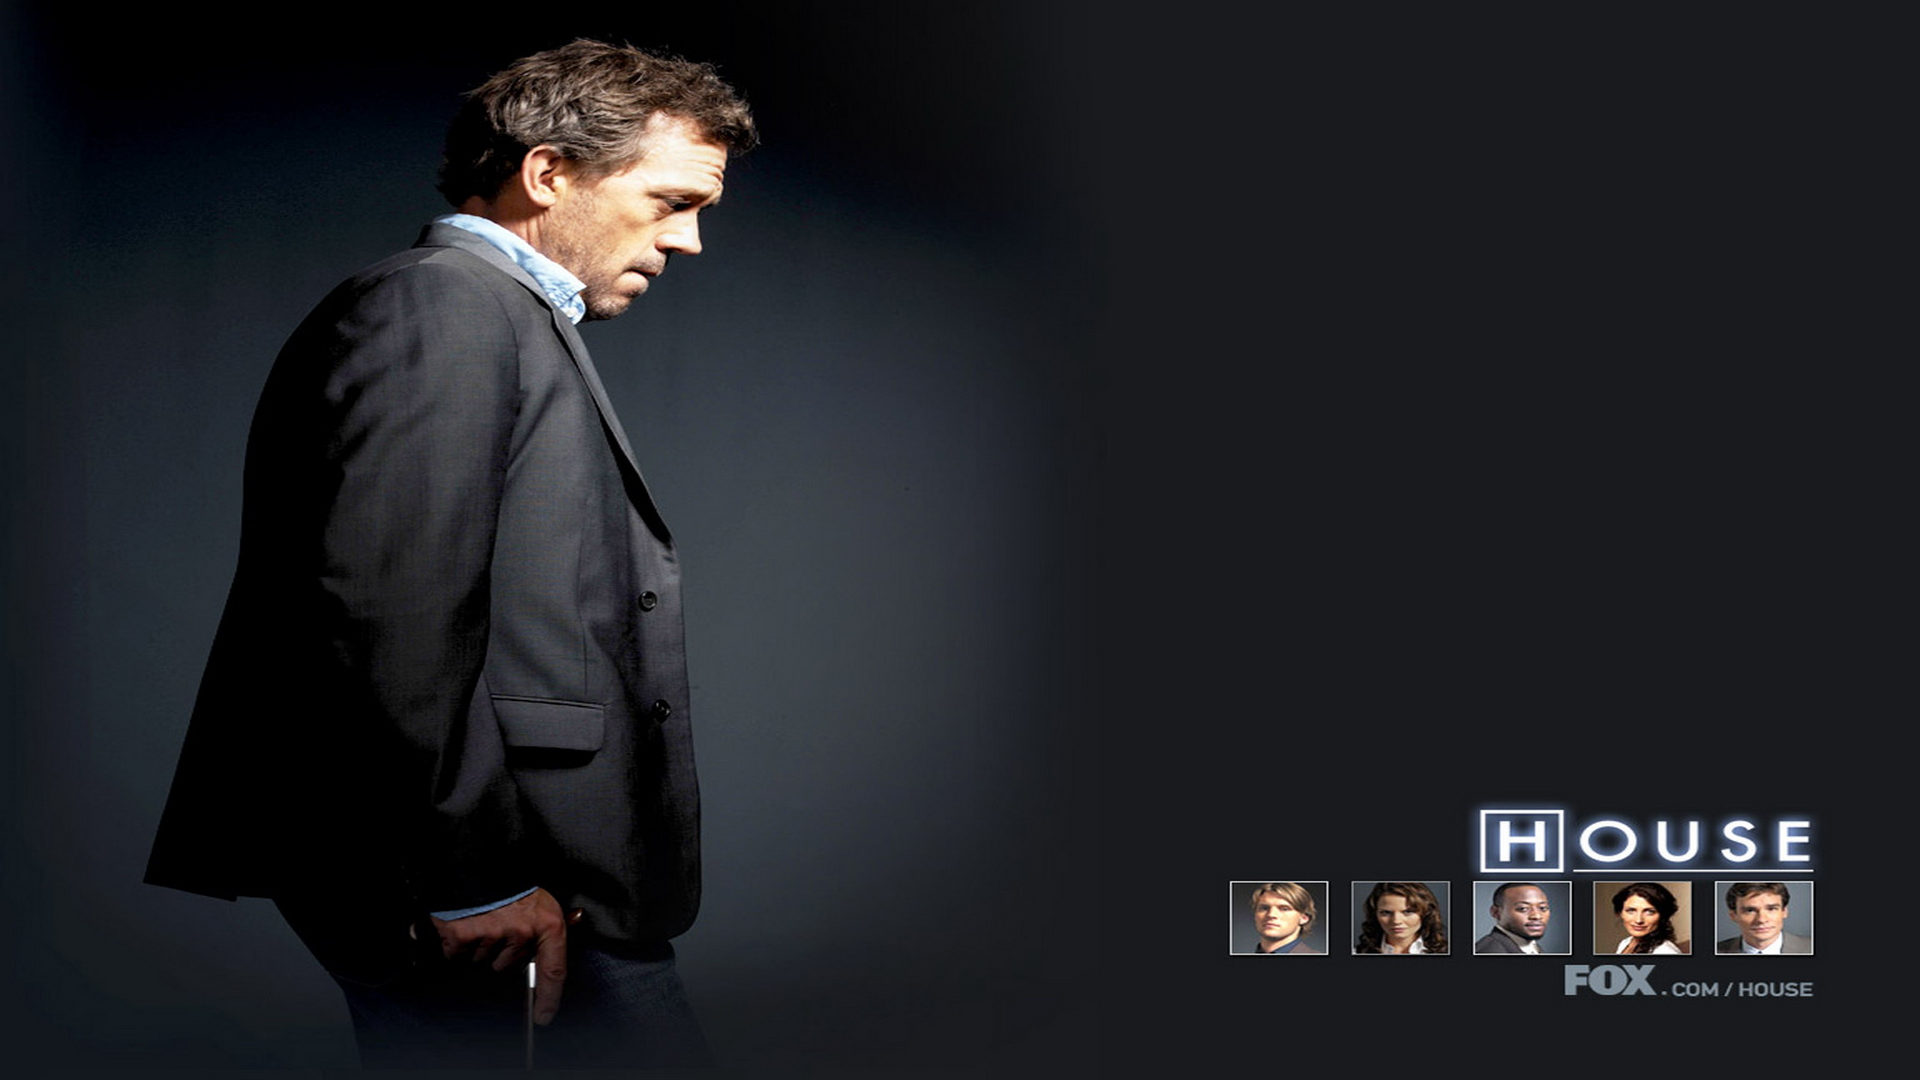 house md wallpaper 45 HD Desktop Wallpapers 1920x1080